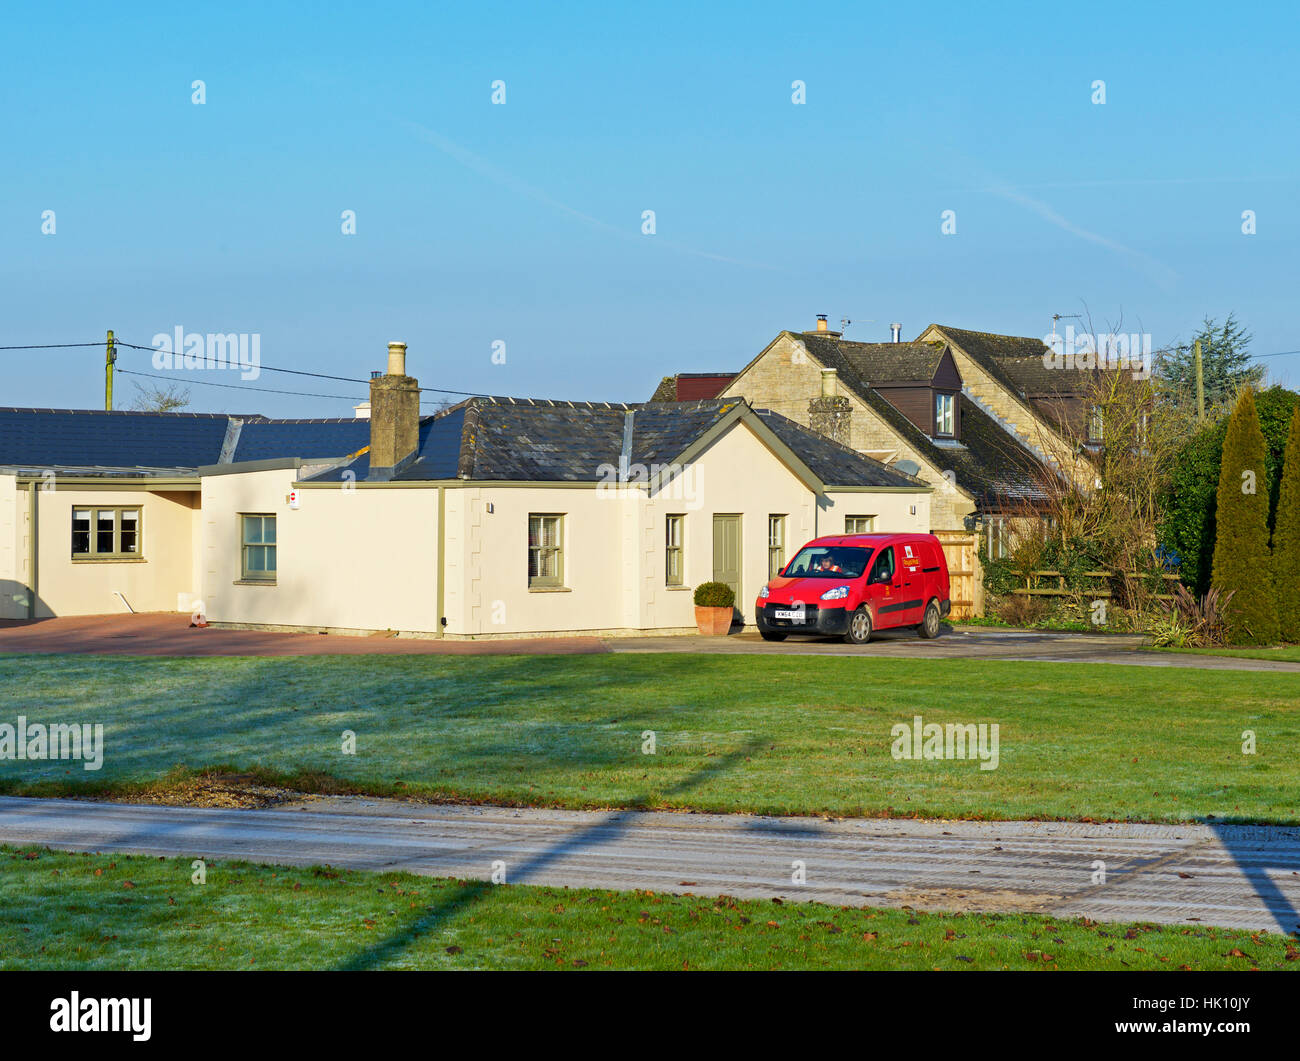 Bungalow in Charterville Allotments, Minster Lovell, Oxfordshire, England uk - Stock Image